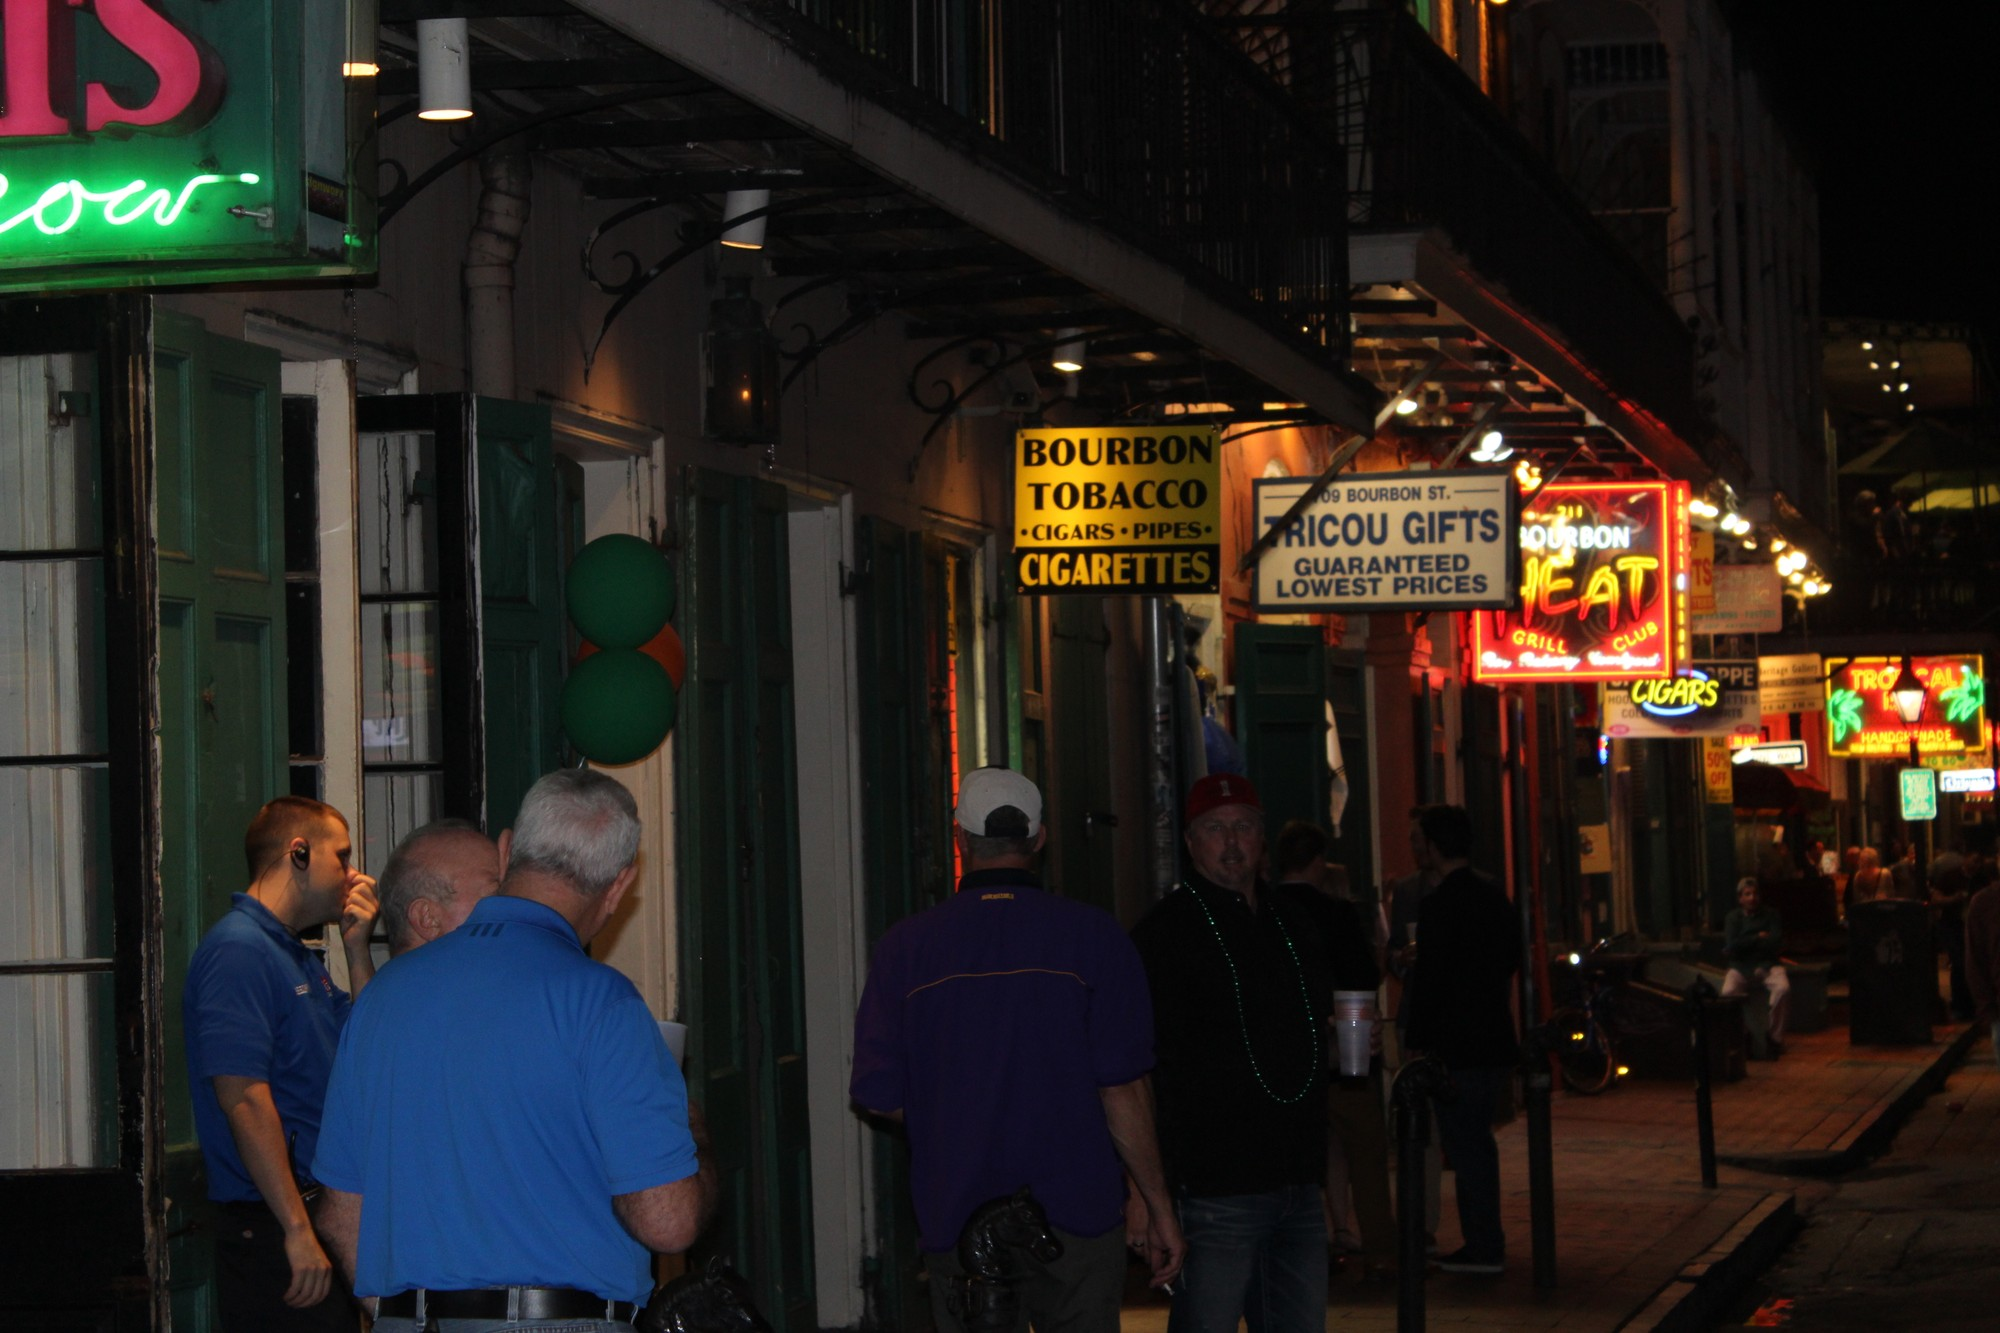 The city's newly introduced public safety plan will attempt to get people off of the streets by 3 a.m. Bars will also be forced to close their doors at that time though they will remain open for business. Photo credit: Anthony Alongi